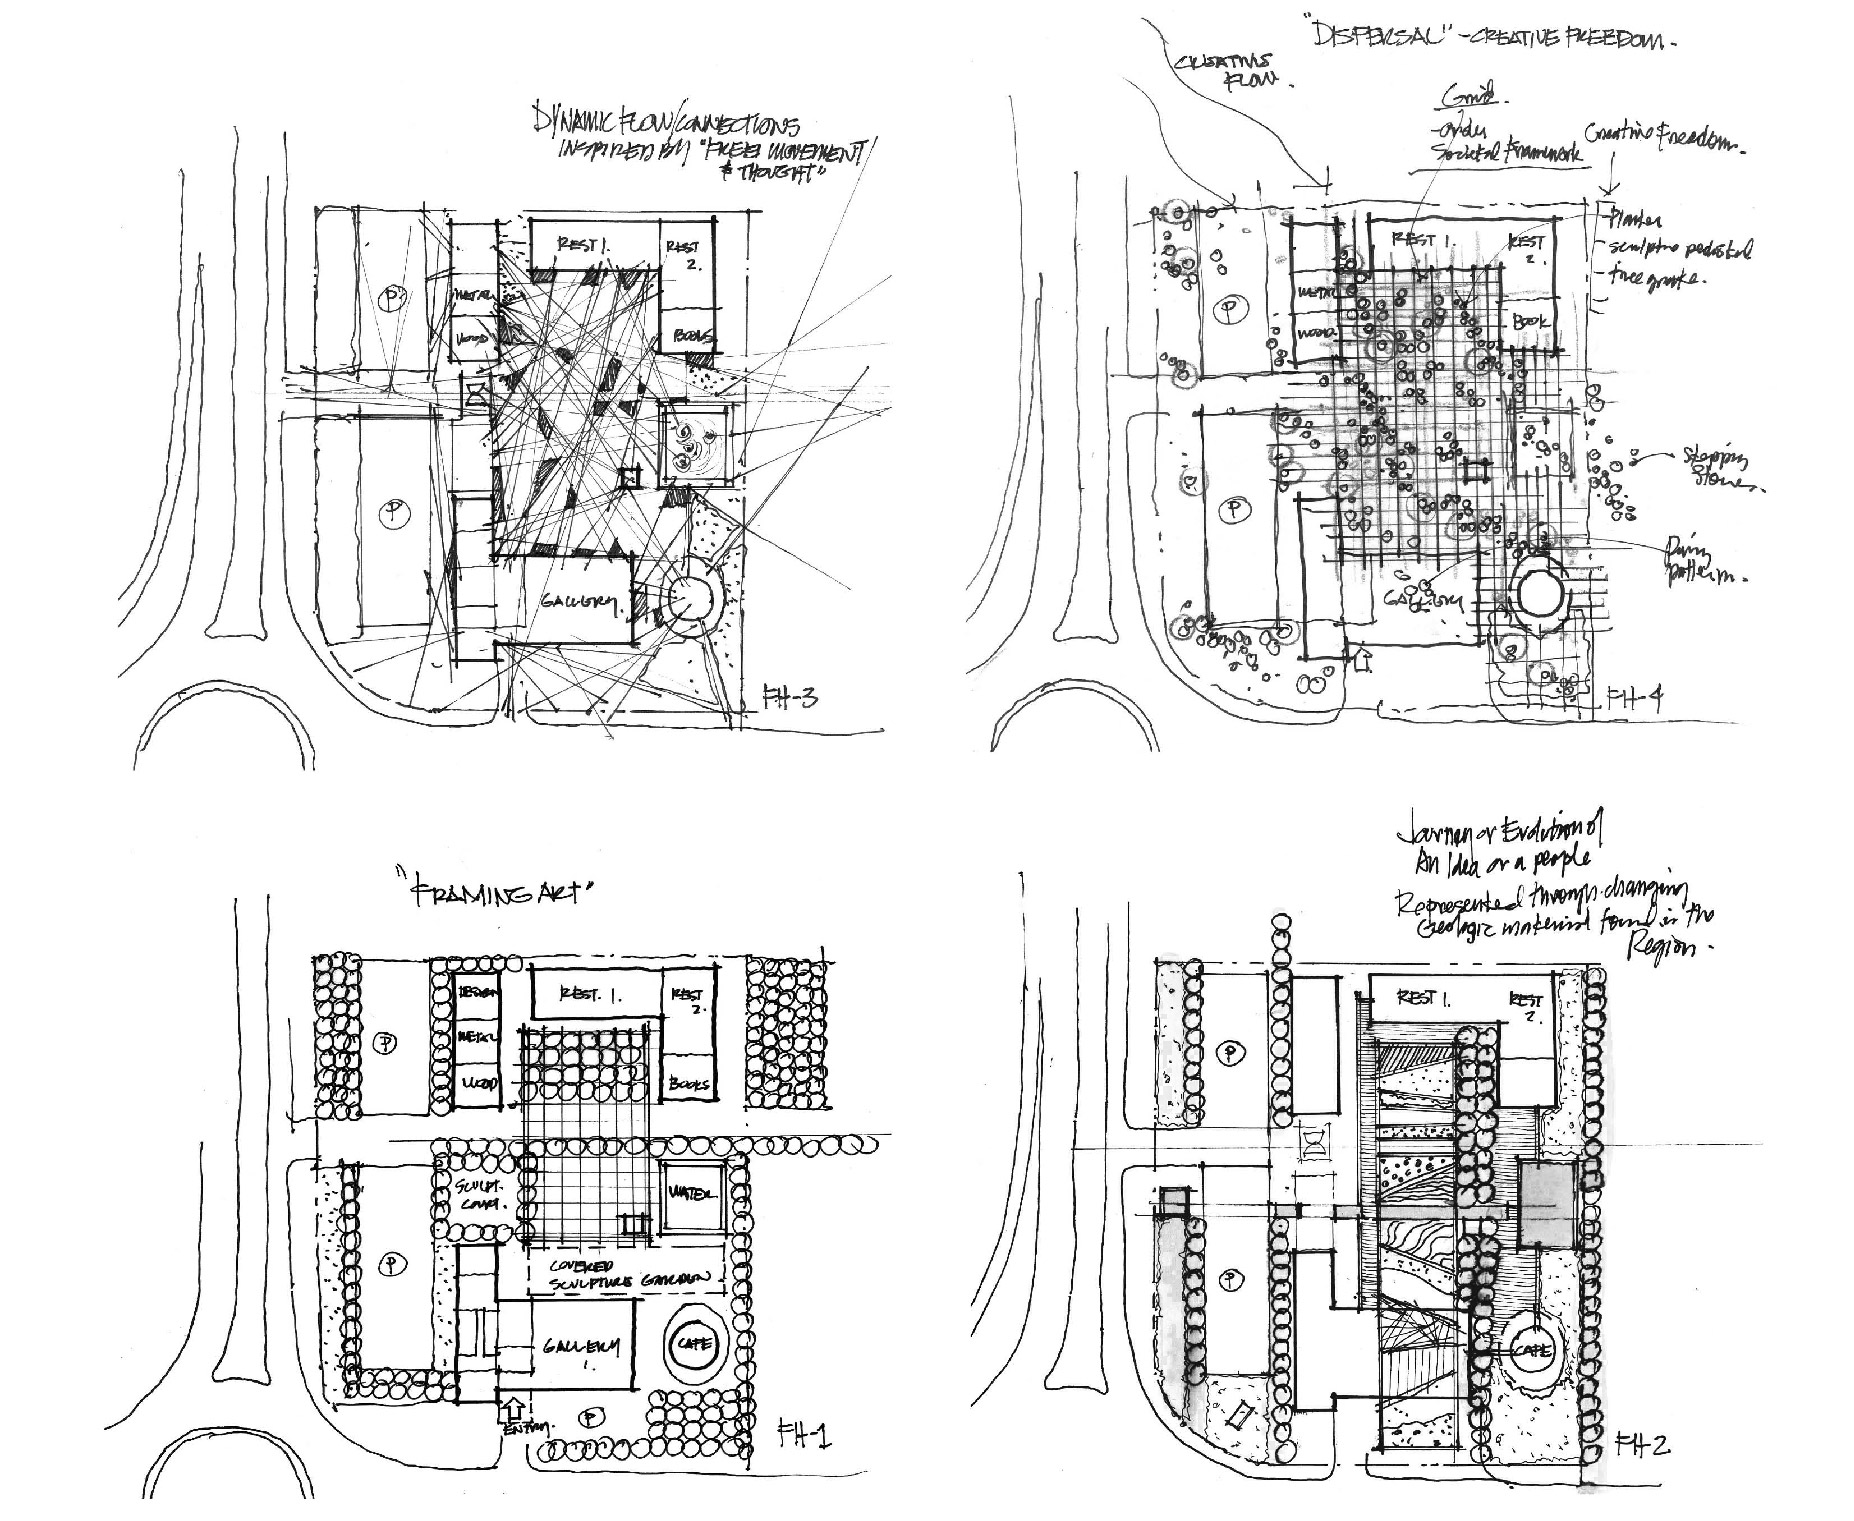 Fire Station concept sketches-01.jpg